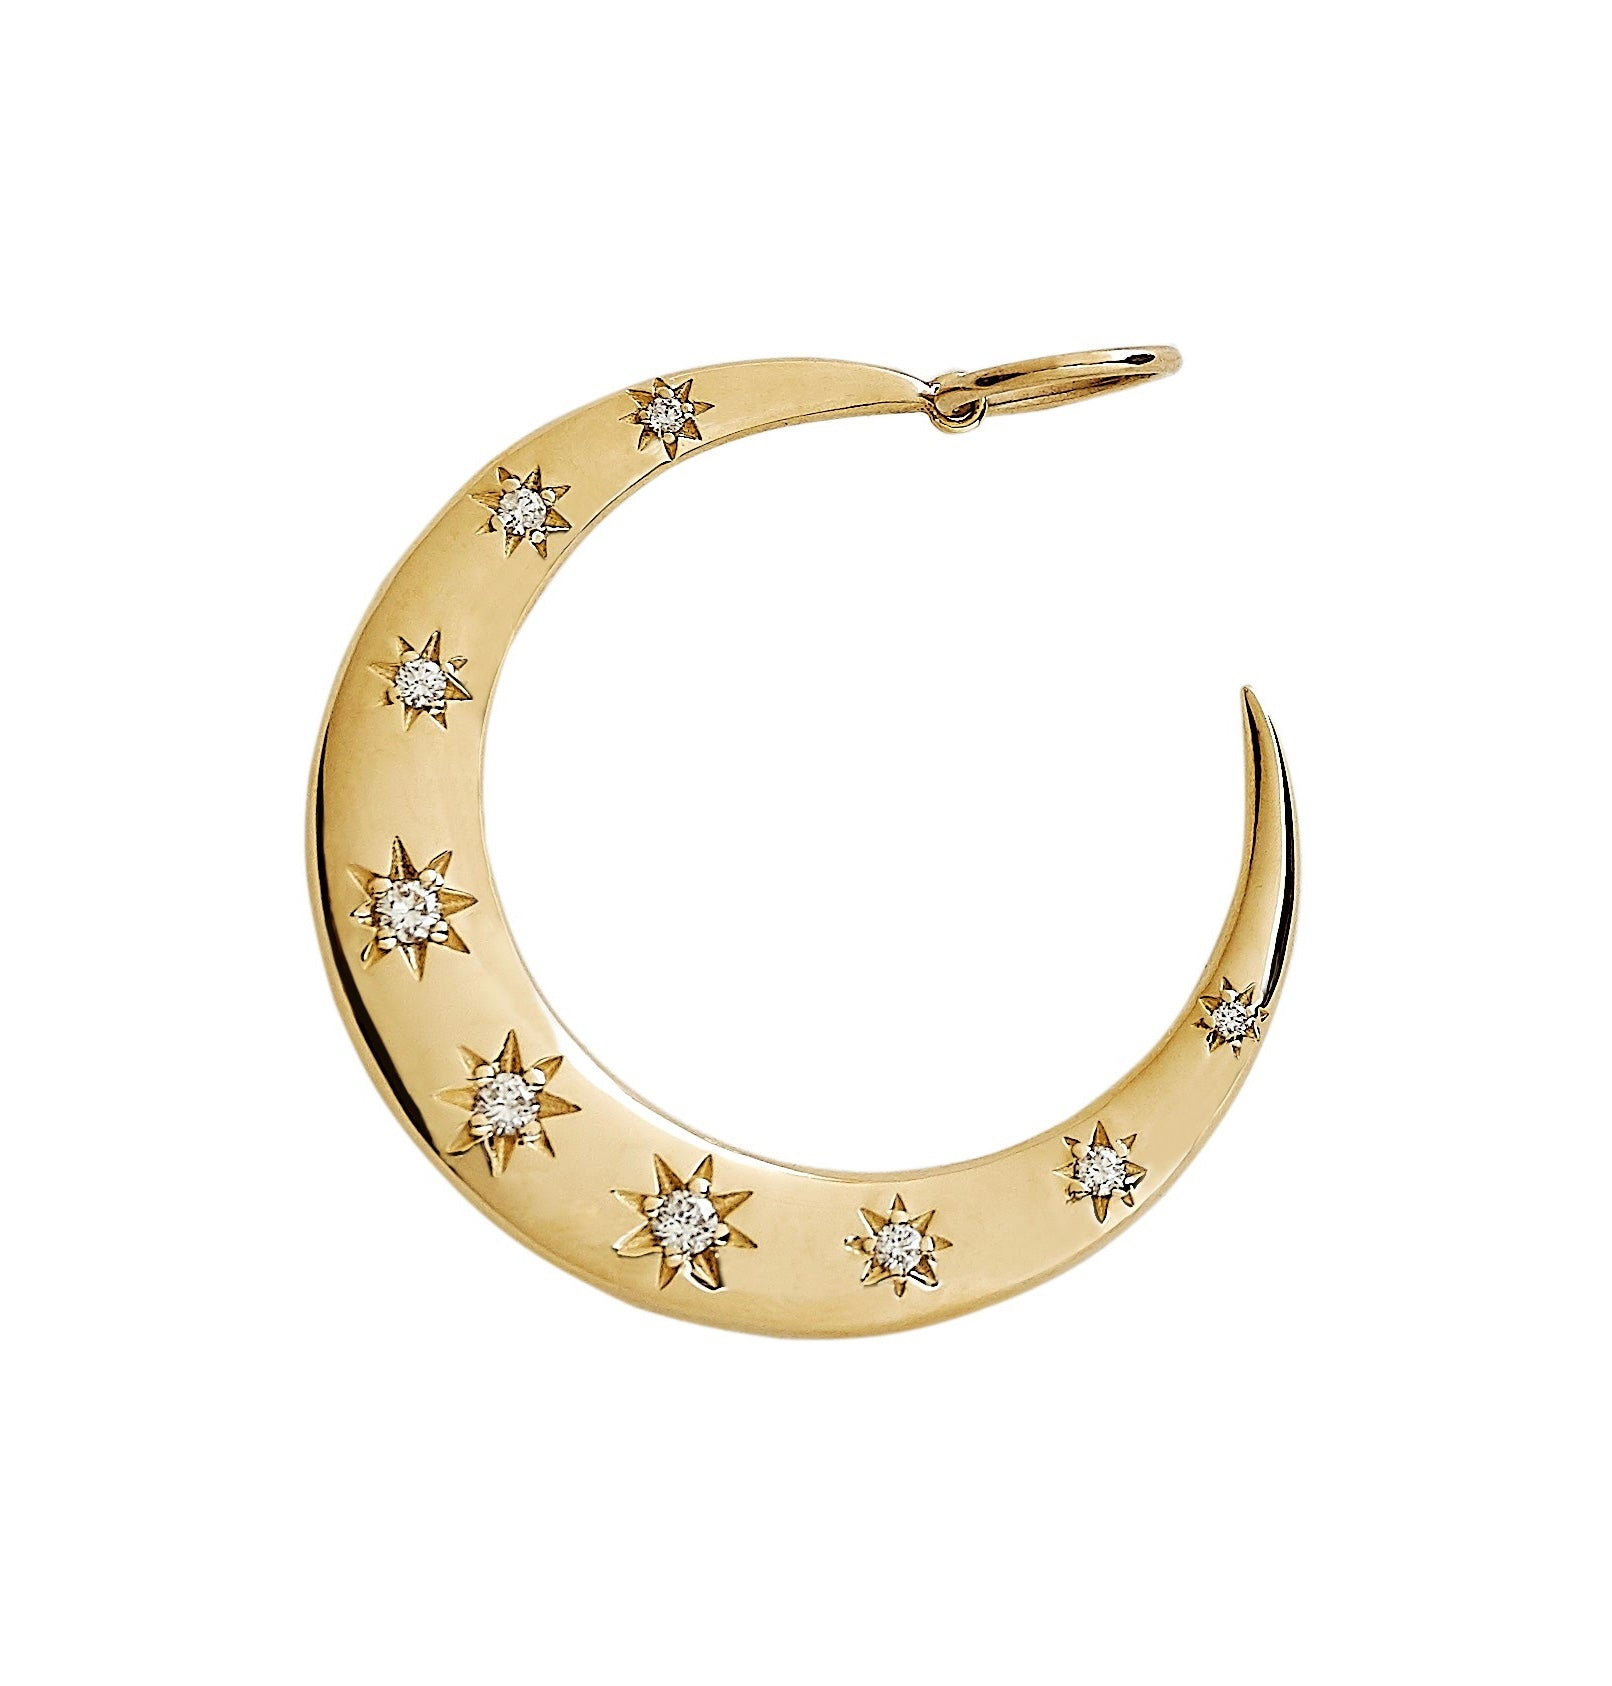 Gold And Scattered Diamond Crescent Moon Charm